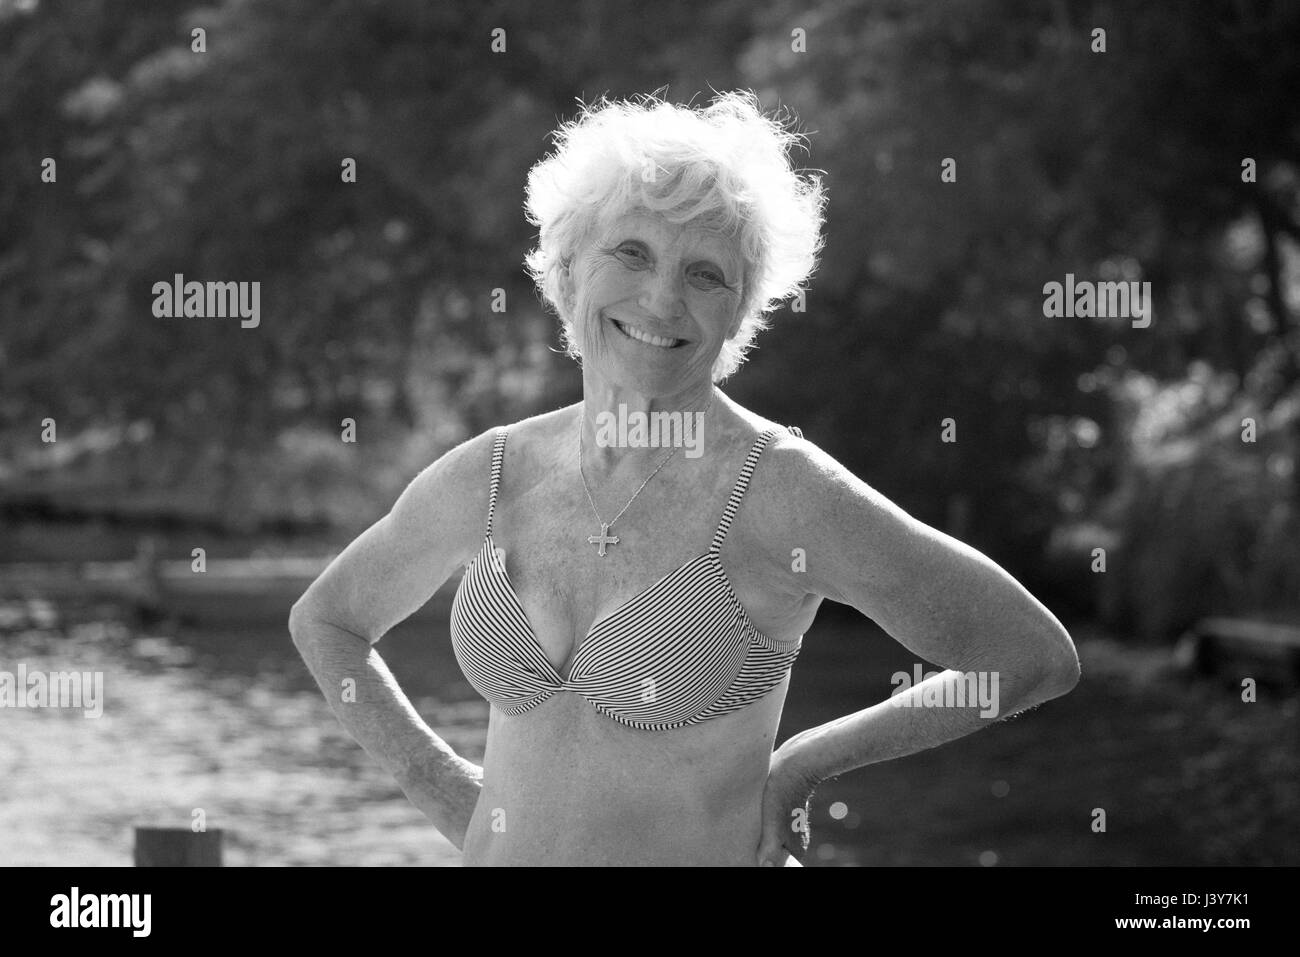 Portrait of senior woman in bikini looking at camera smiling - Stock Image